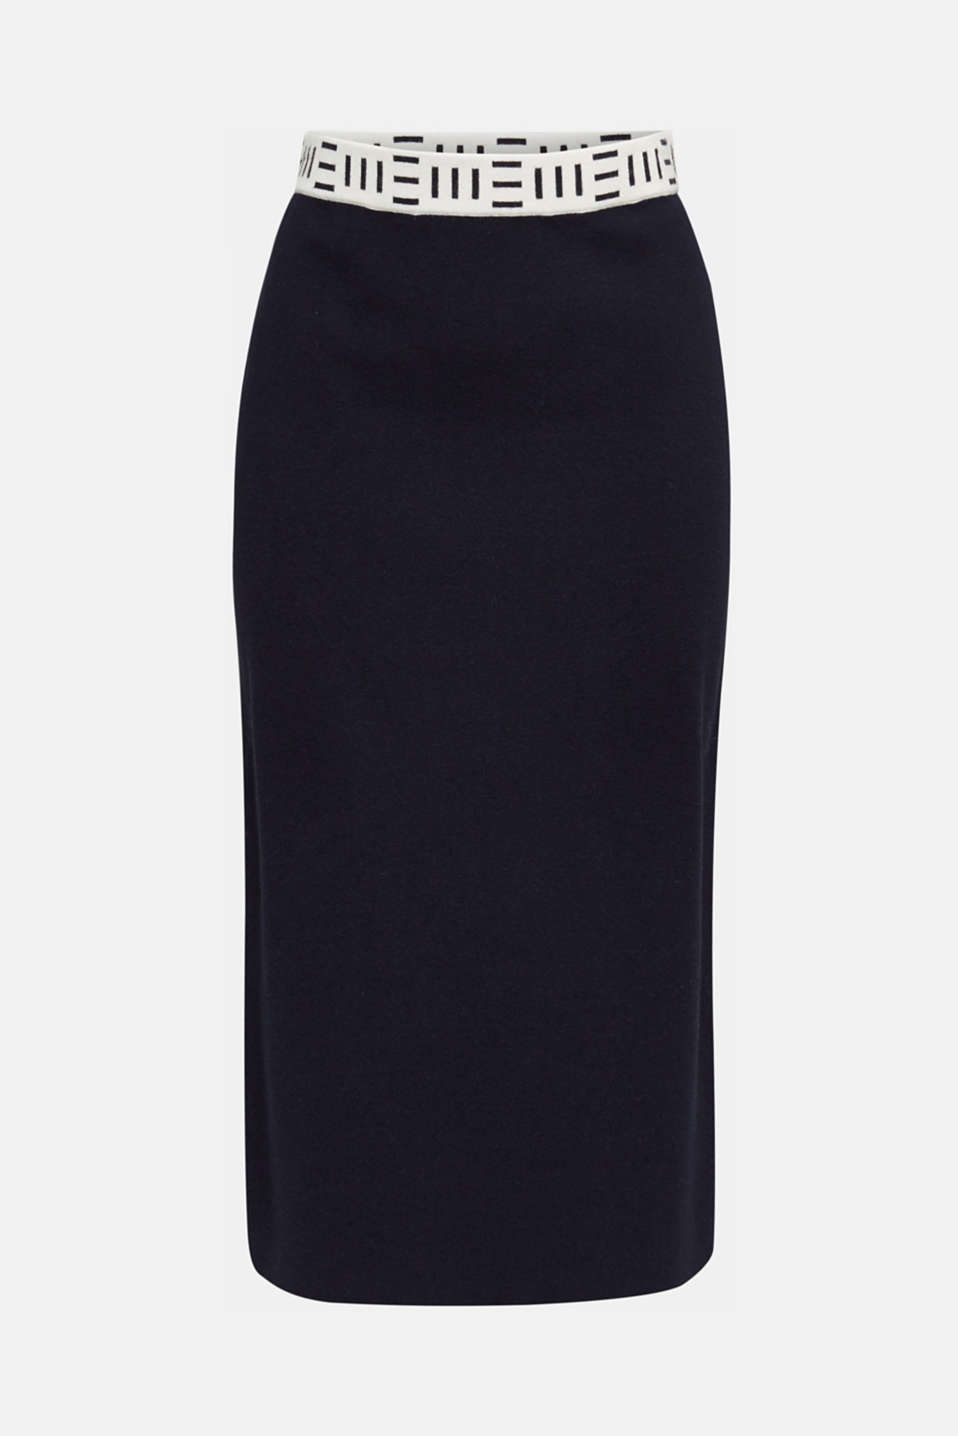 Slim-fitting knit skirt with a logo waistband, NAVY, detail image number 7